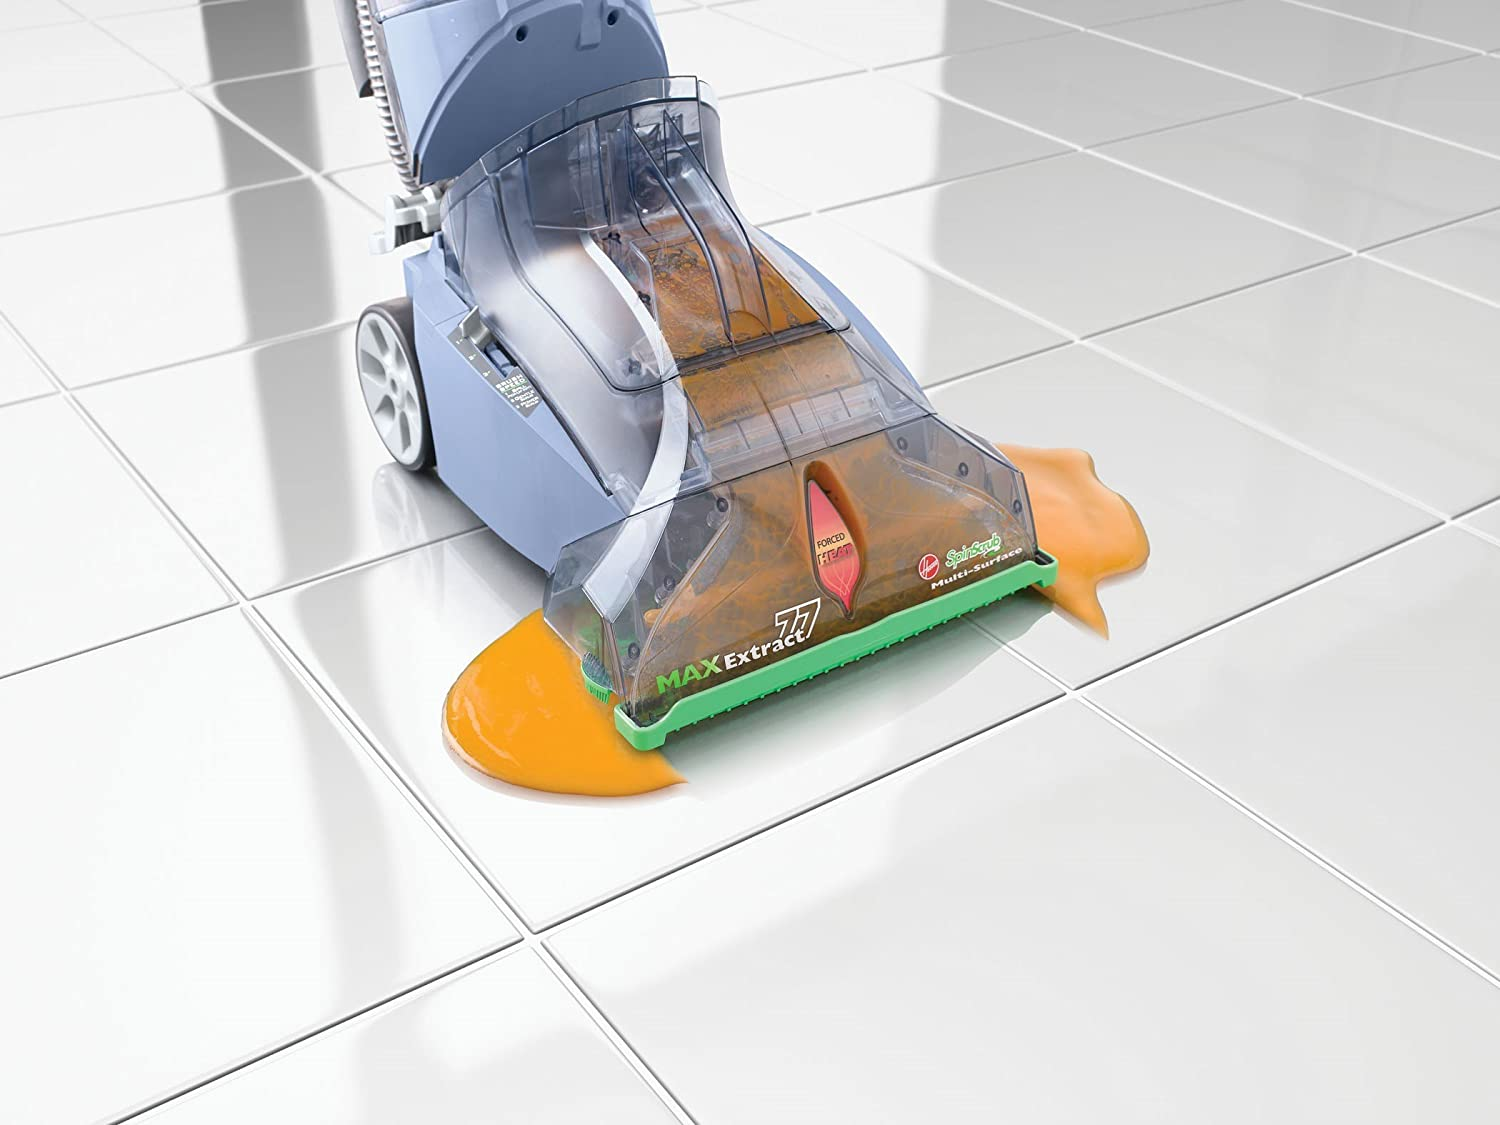 Hoover maxextract 77 multi surface pro carpet and hard floor hoover maxextract 77 multi surface pro carpet and hard floor cleaner fh50240 amazon home kitchen dailygadgetfo Images